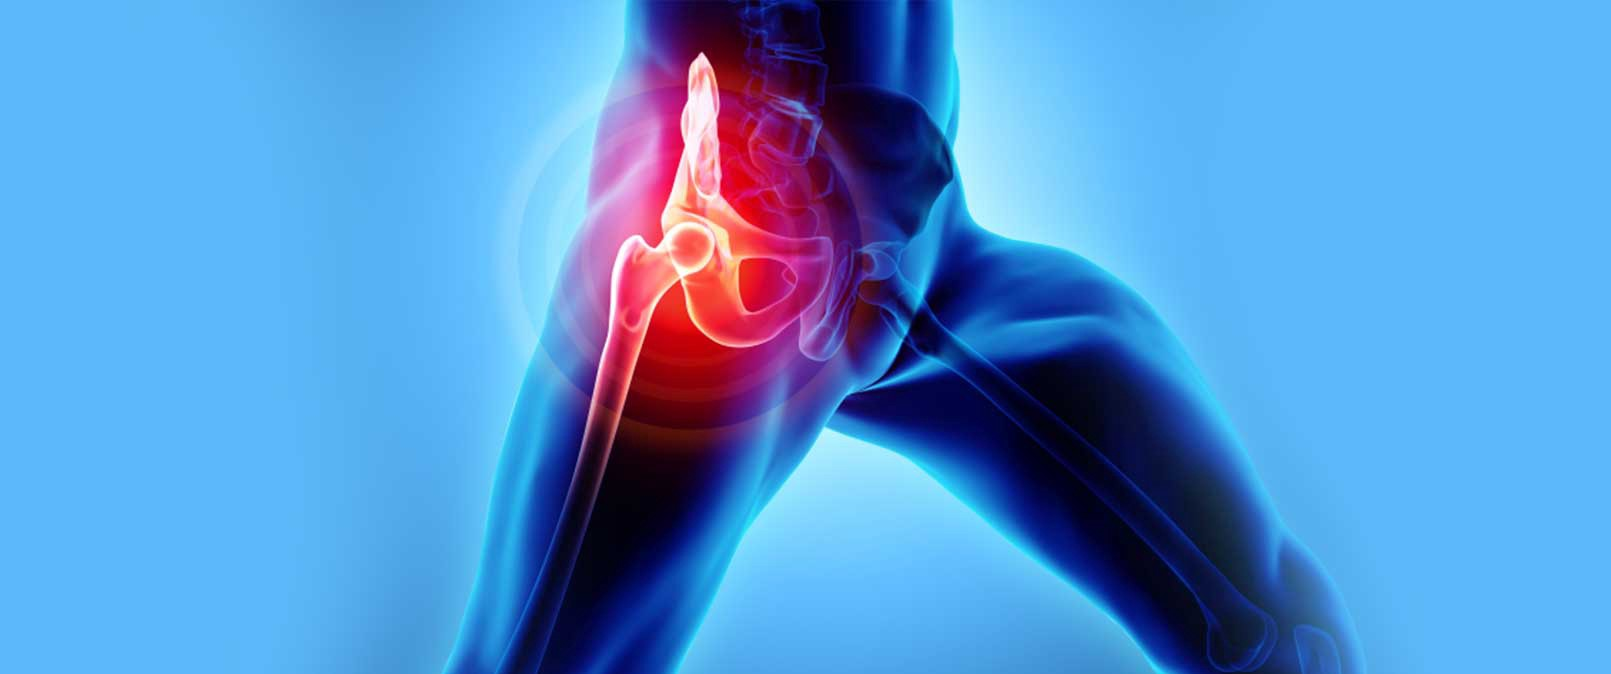 Recovery Guide for Hip Replacement Surgery - International